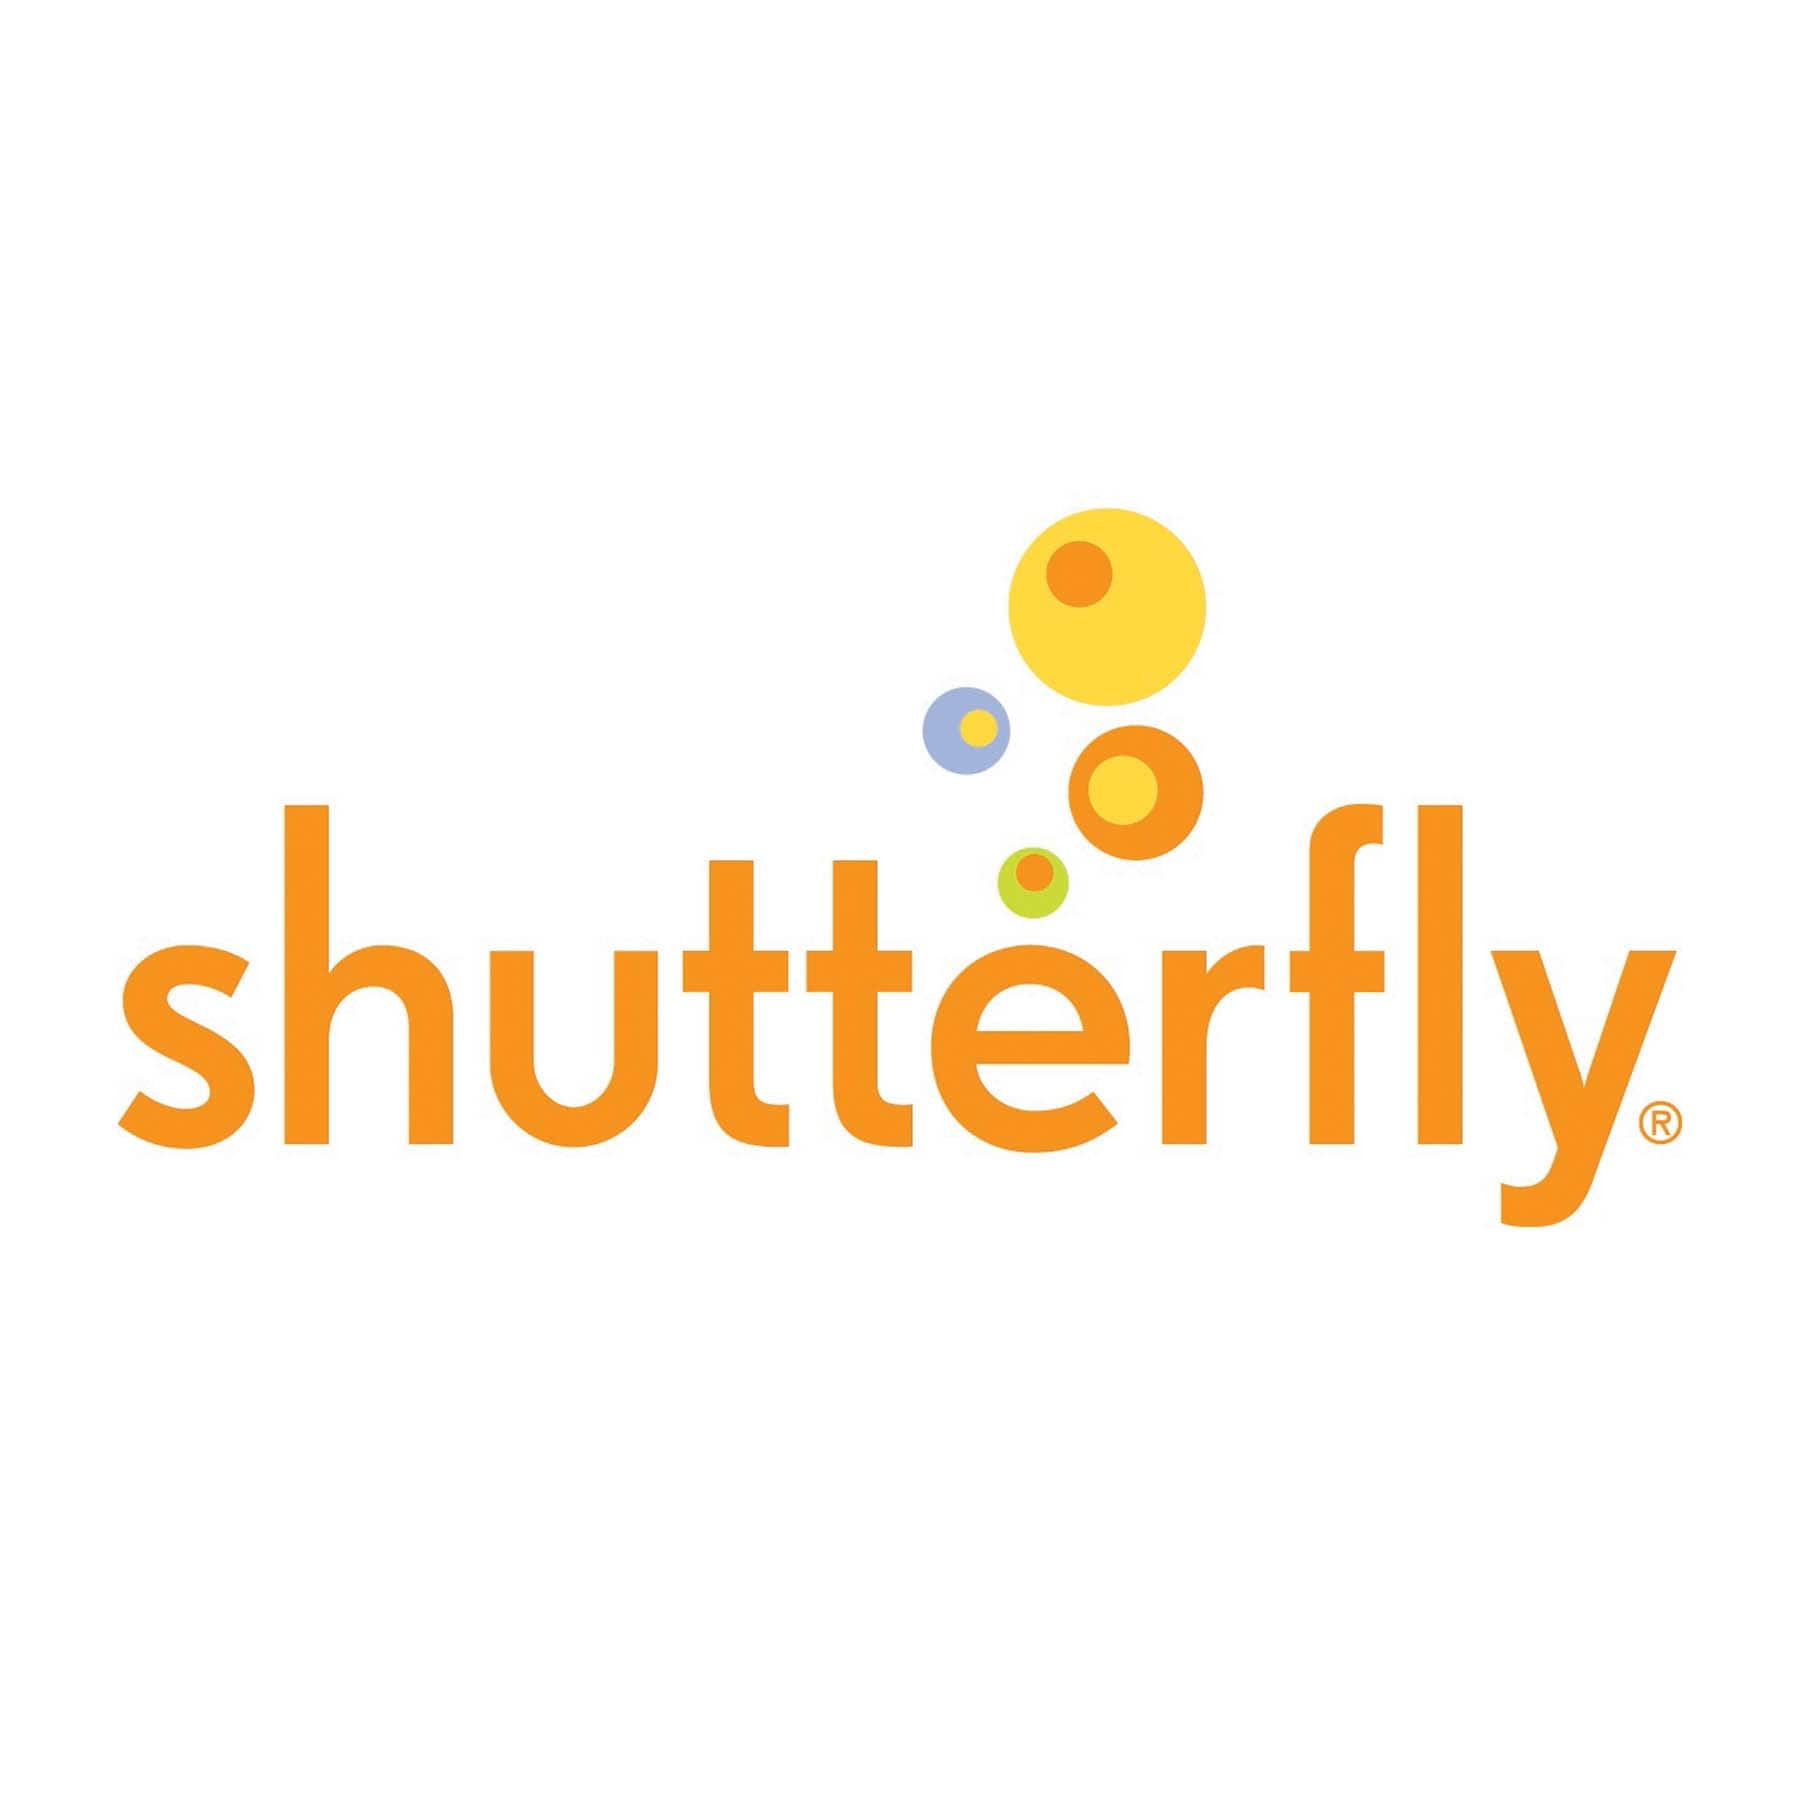 """ShutterFly Customized 8""""x11"""" Wall Calendar $6.99 and/or Personalized Playing Cards $7.99 Shipped"""